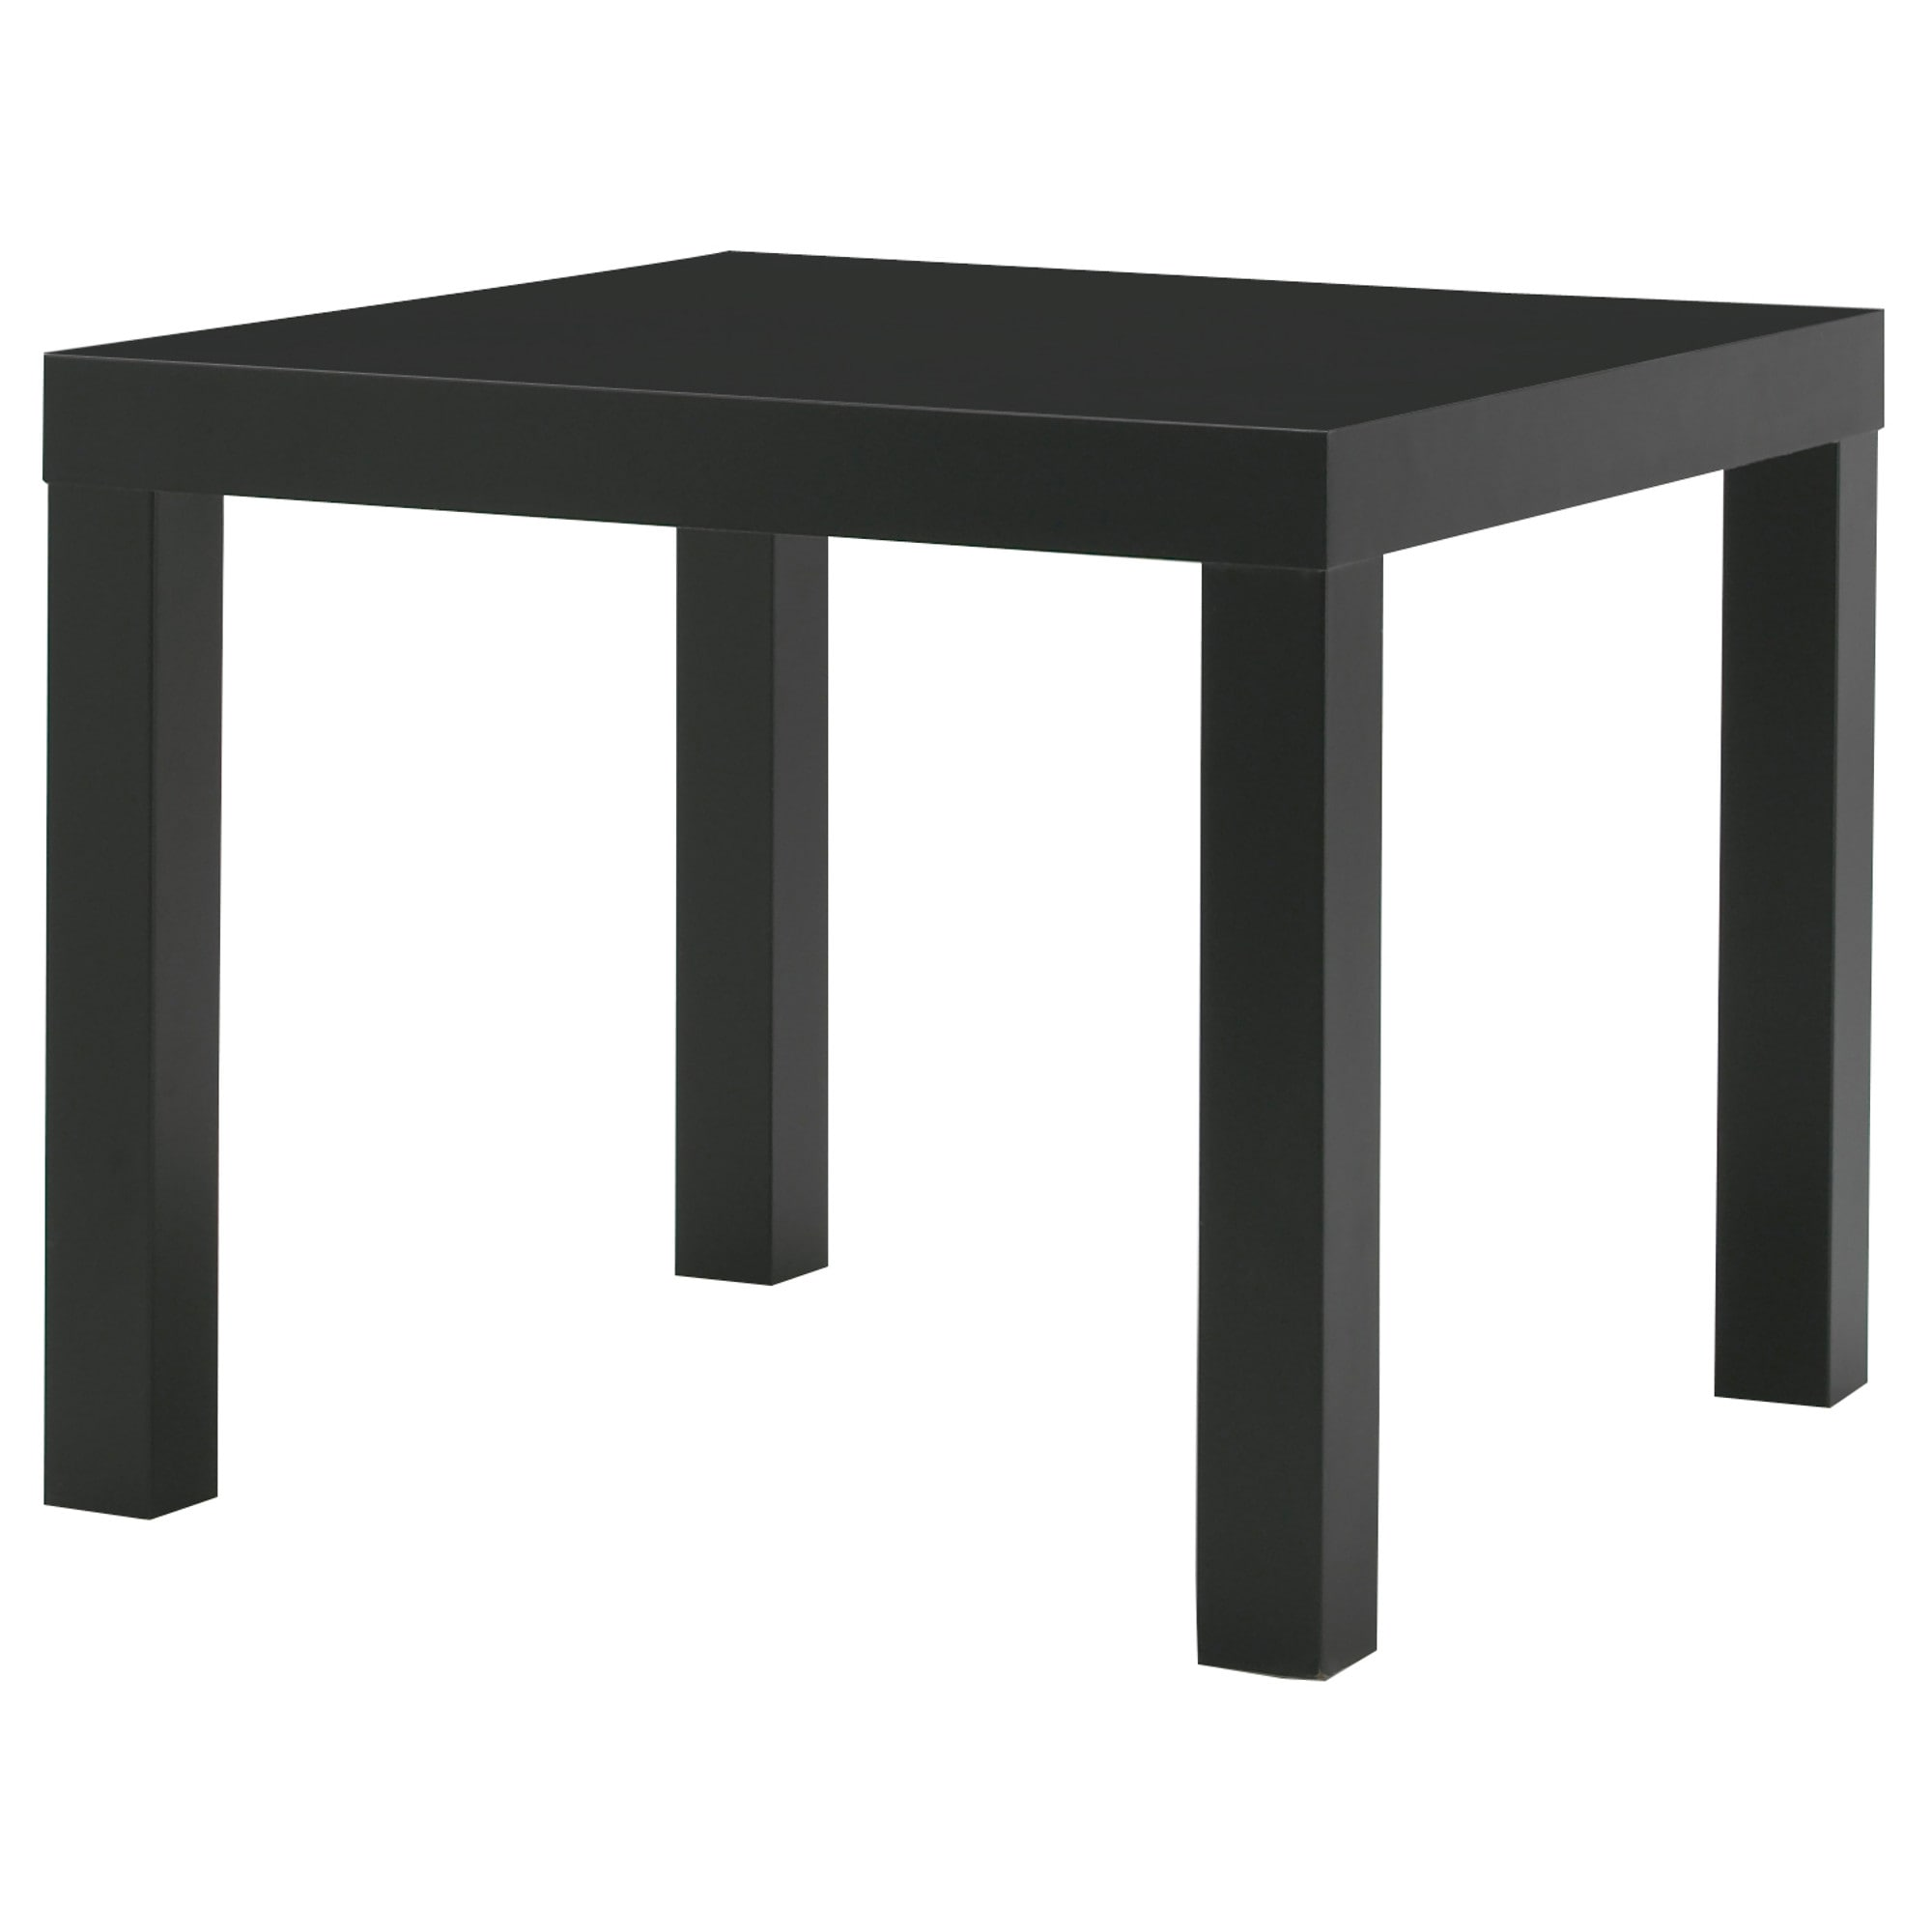 lack side table black 22x22 ikea - End Tables Ikea